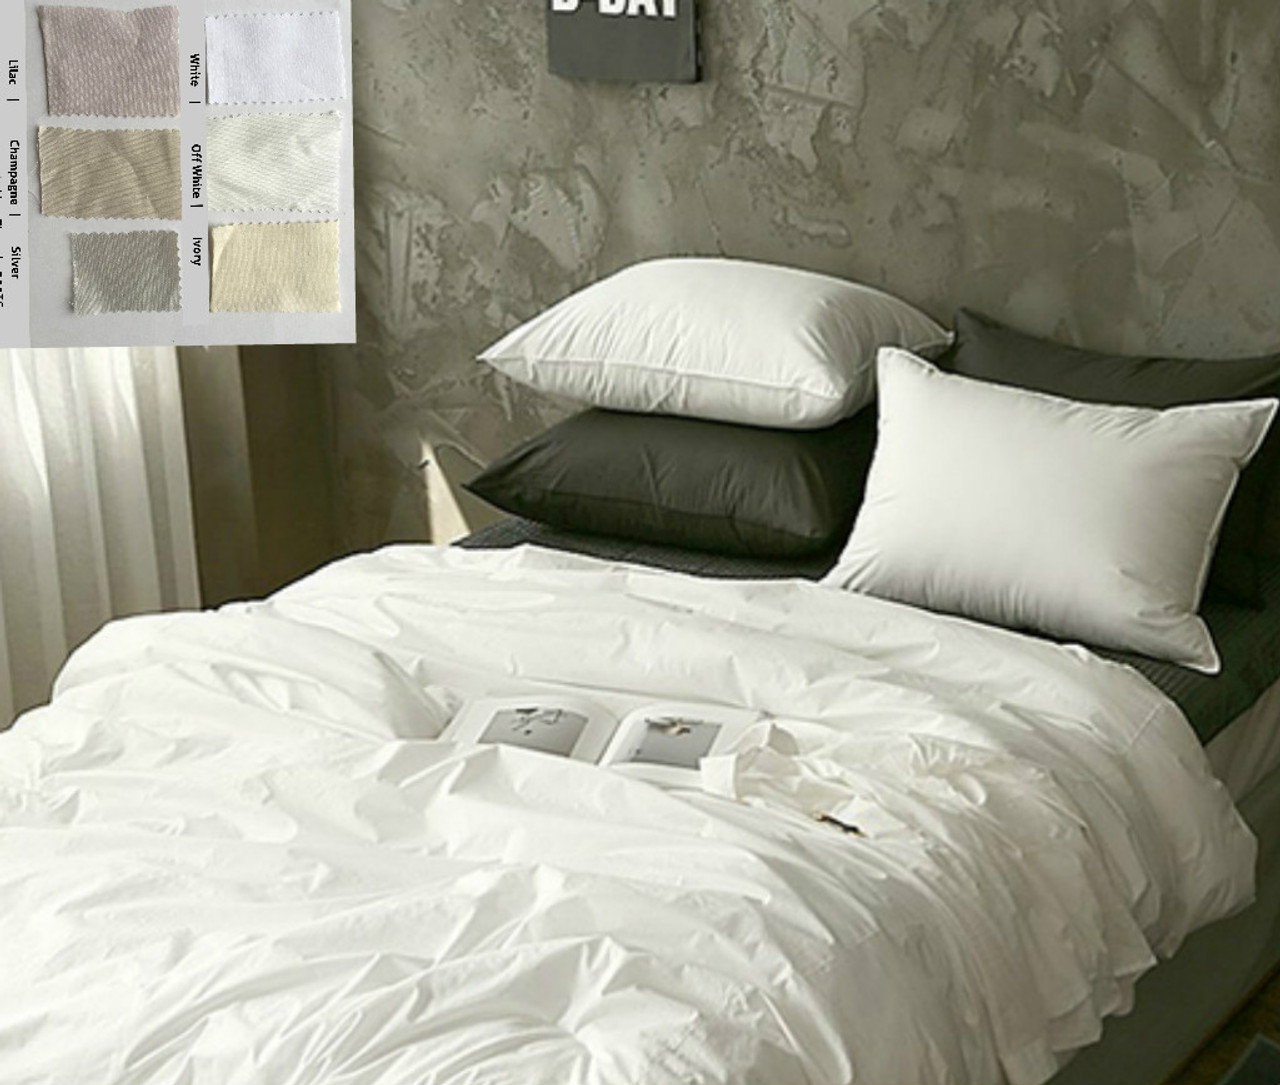 Fullsize Of Cotton Duvet Cover